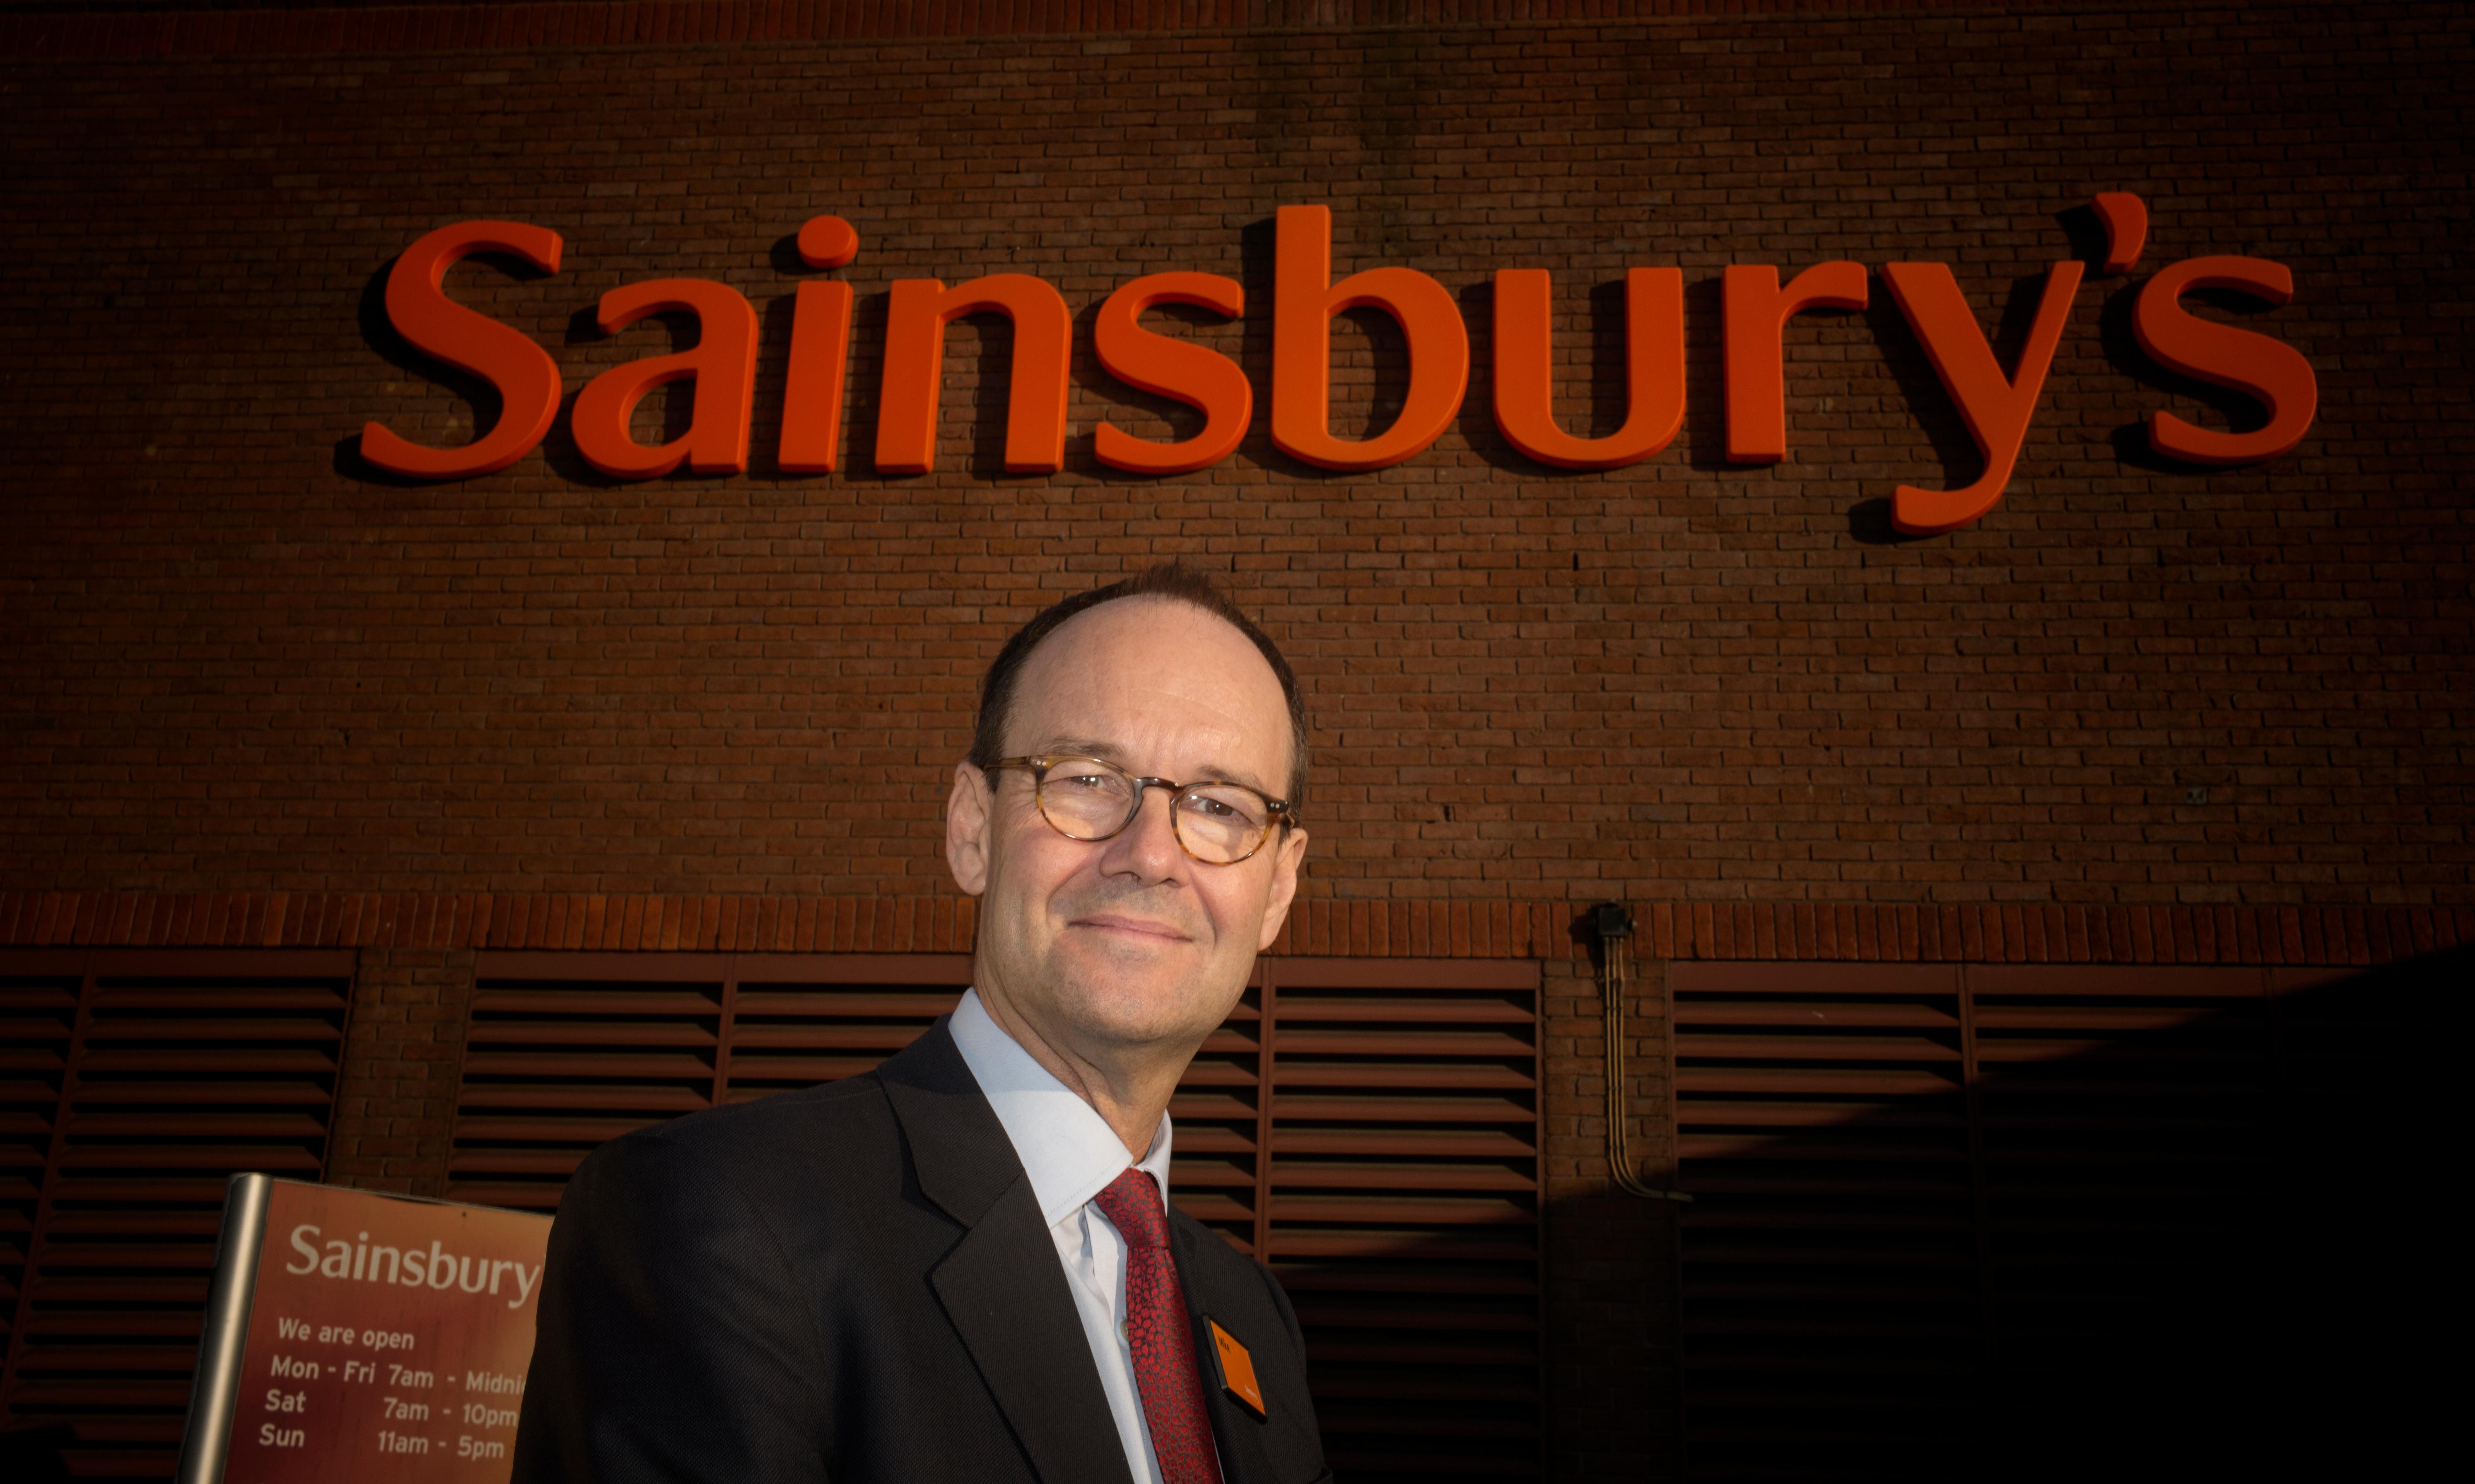 Failed merger leaves Sainsbury's investors fearing there is no plan B